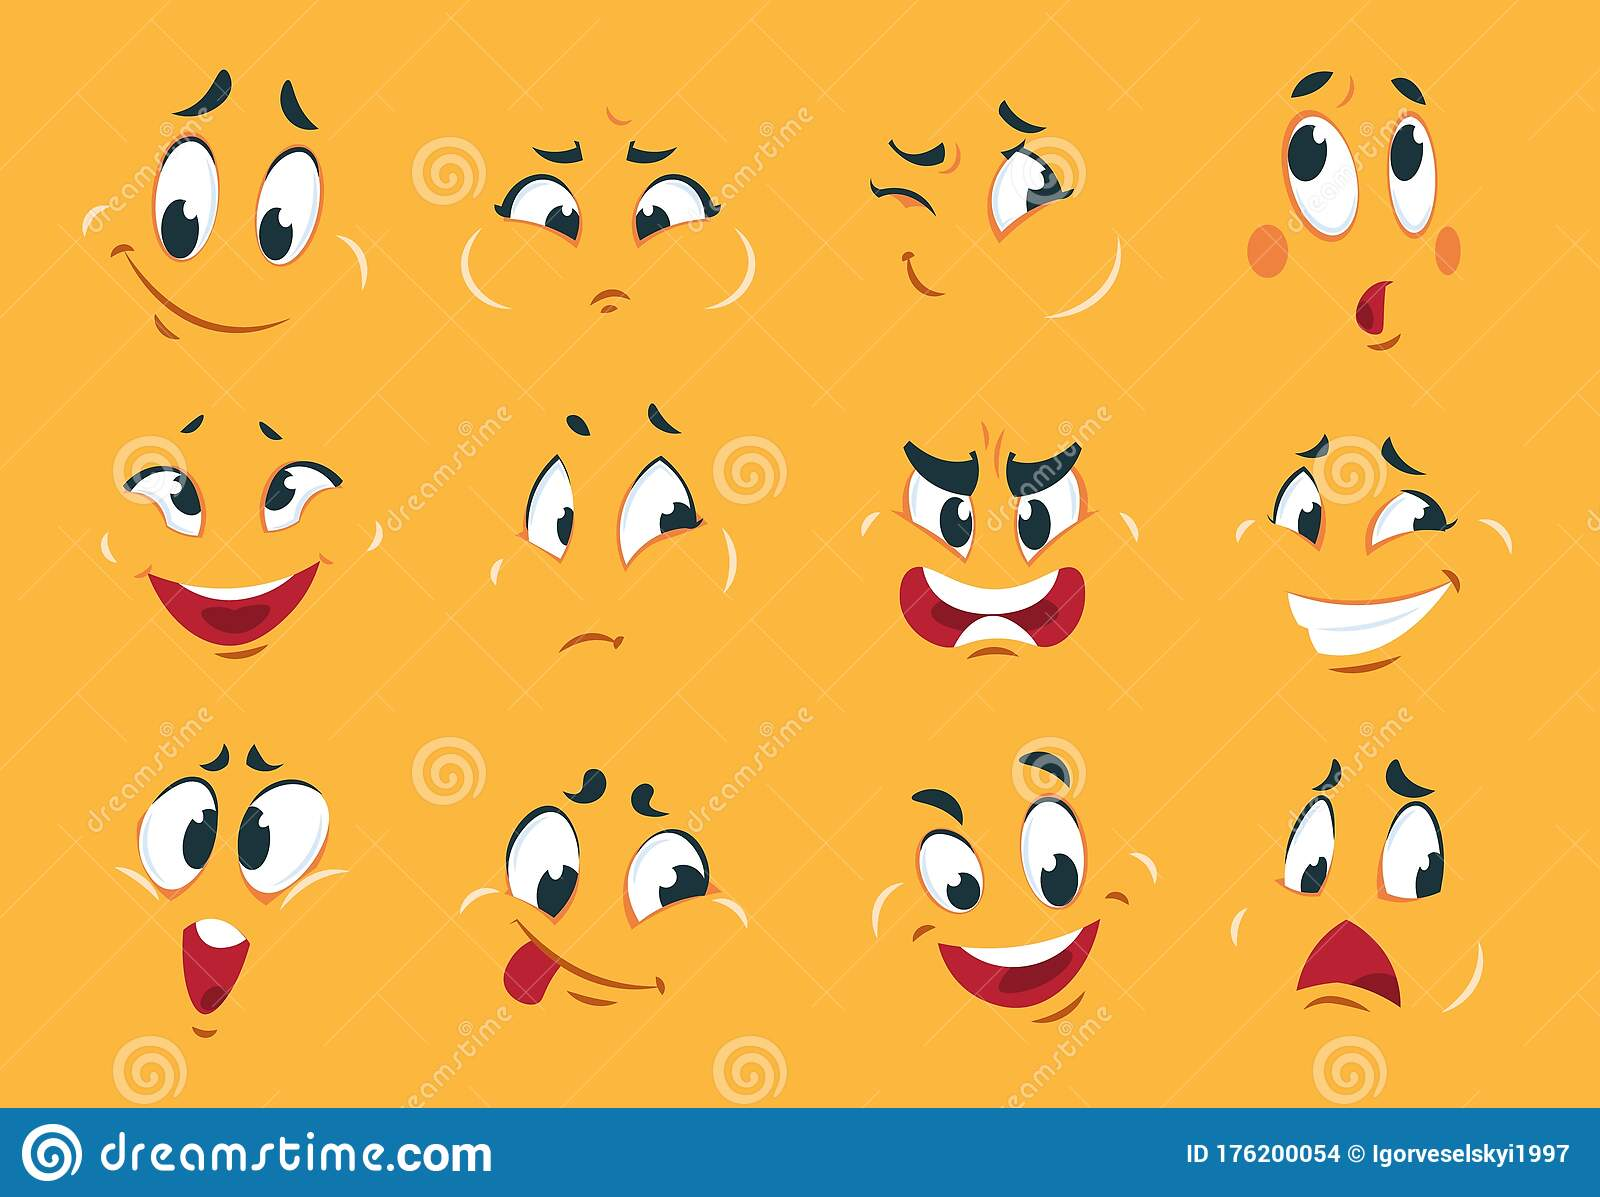 Funny Cartoon Faces Angry Character Expressions Eyes